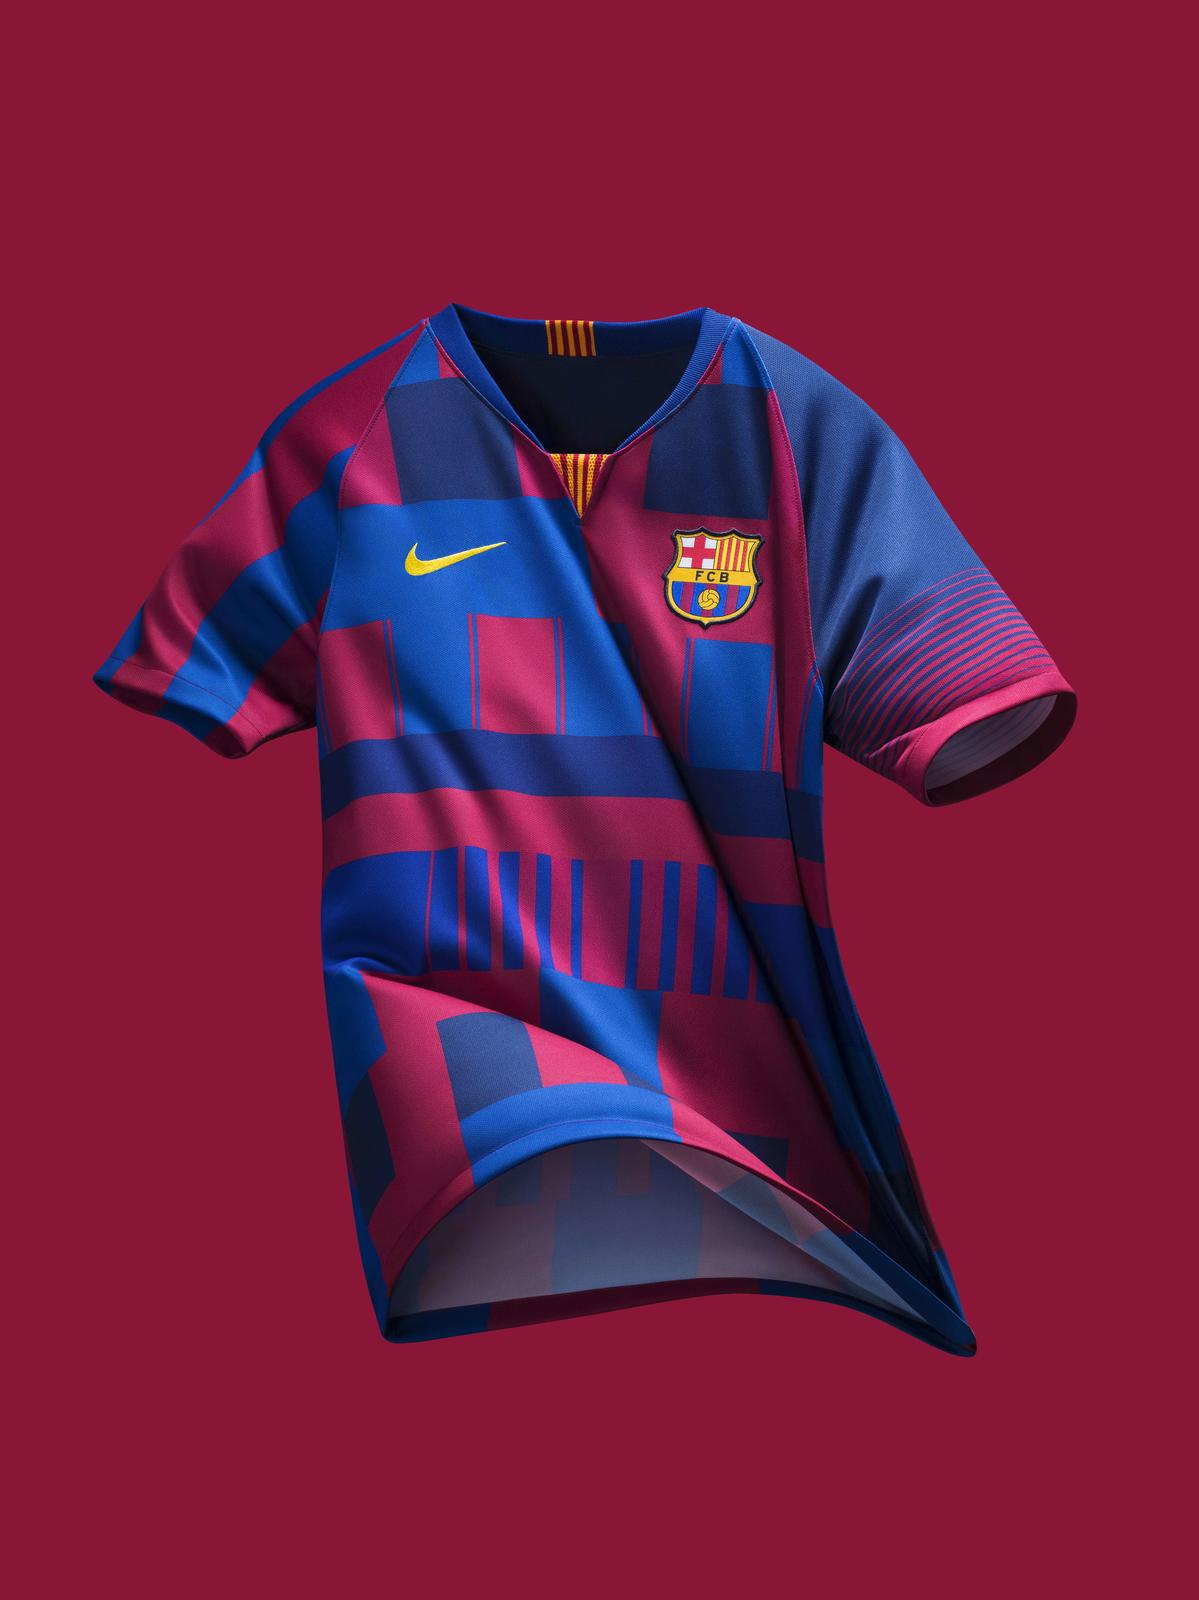 09e517add FC Barcelona What The 20th Anniversary Jersey - Nike News